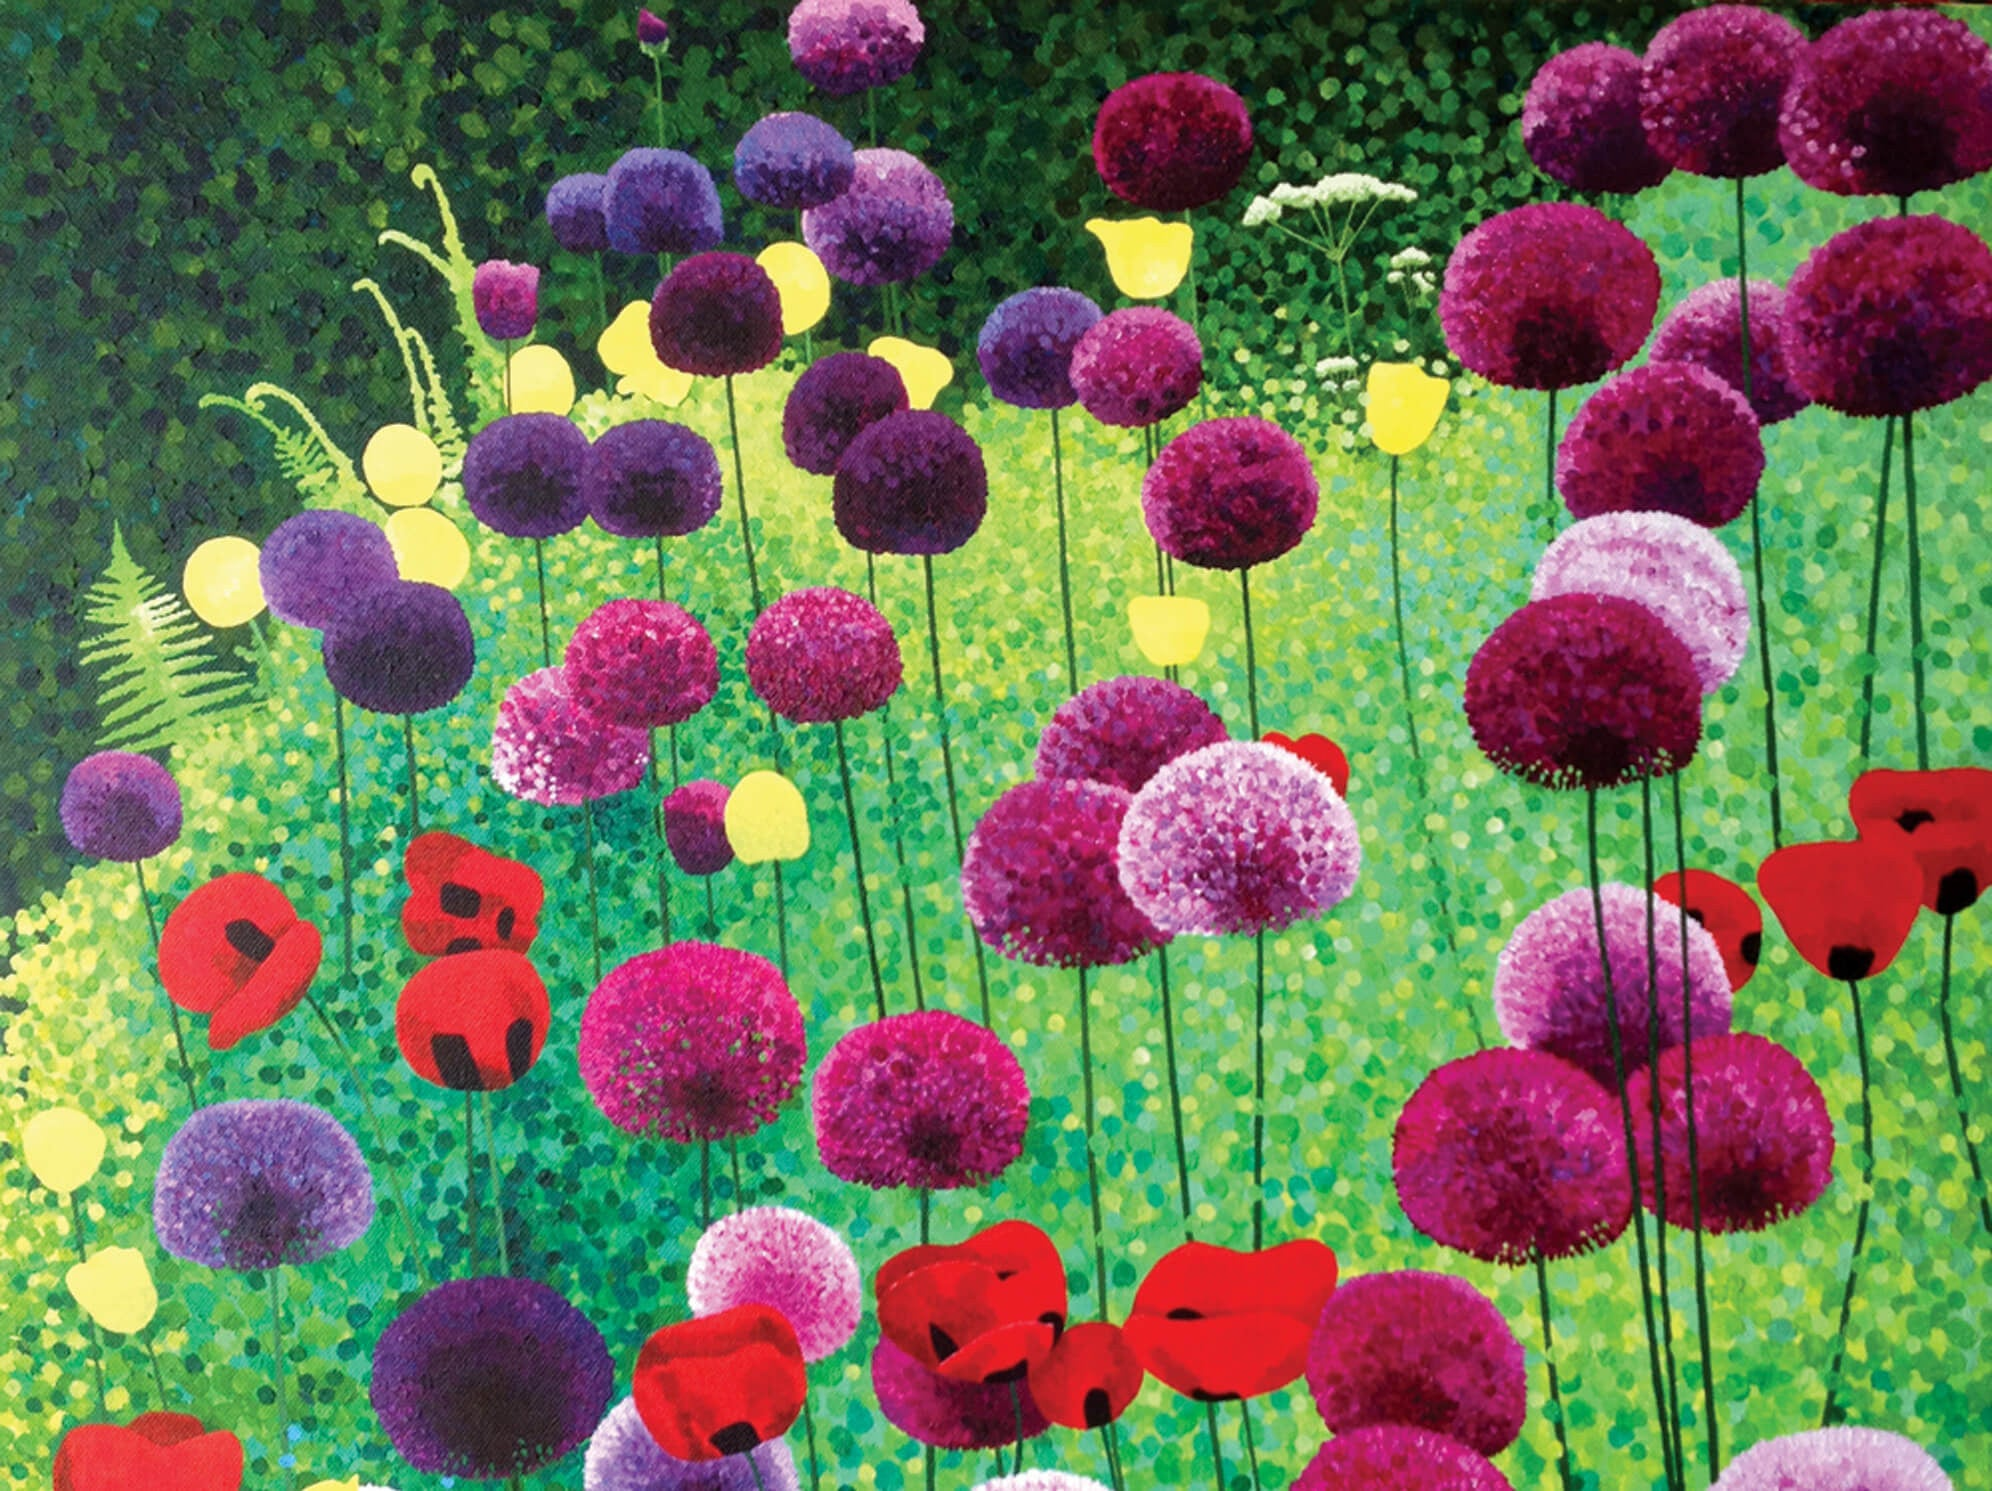 Alliums and Poppies by Susan Entwistle